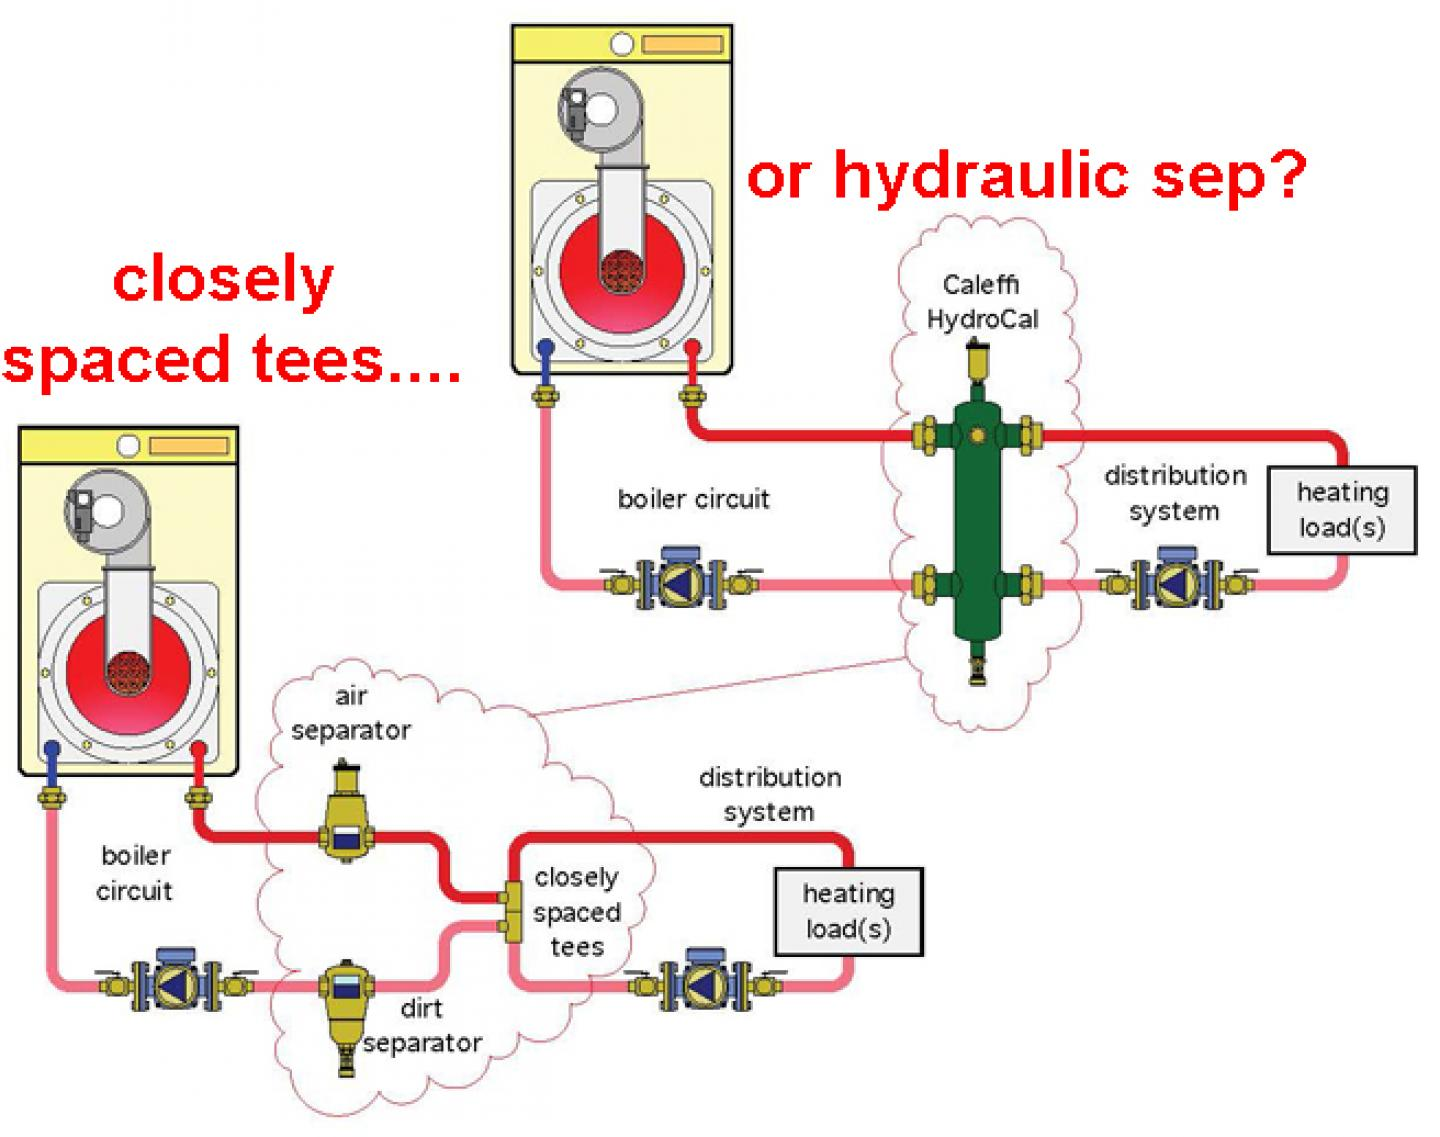 medium resolution of hydraulic separation closely spaced tees